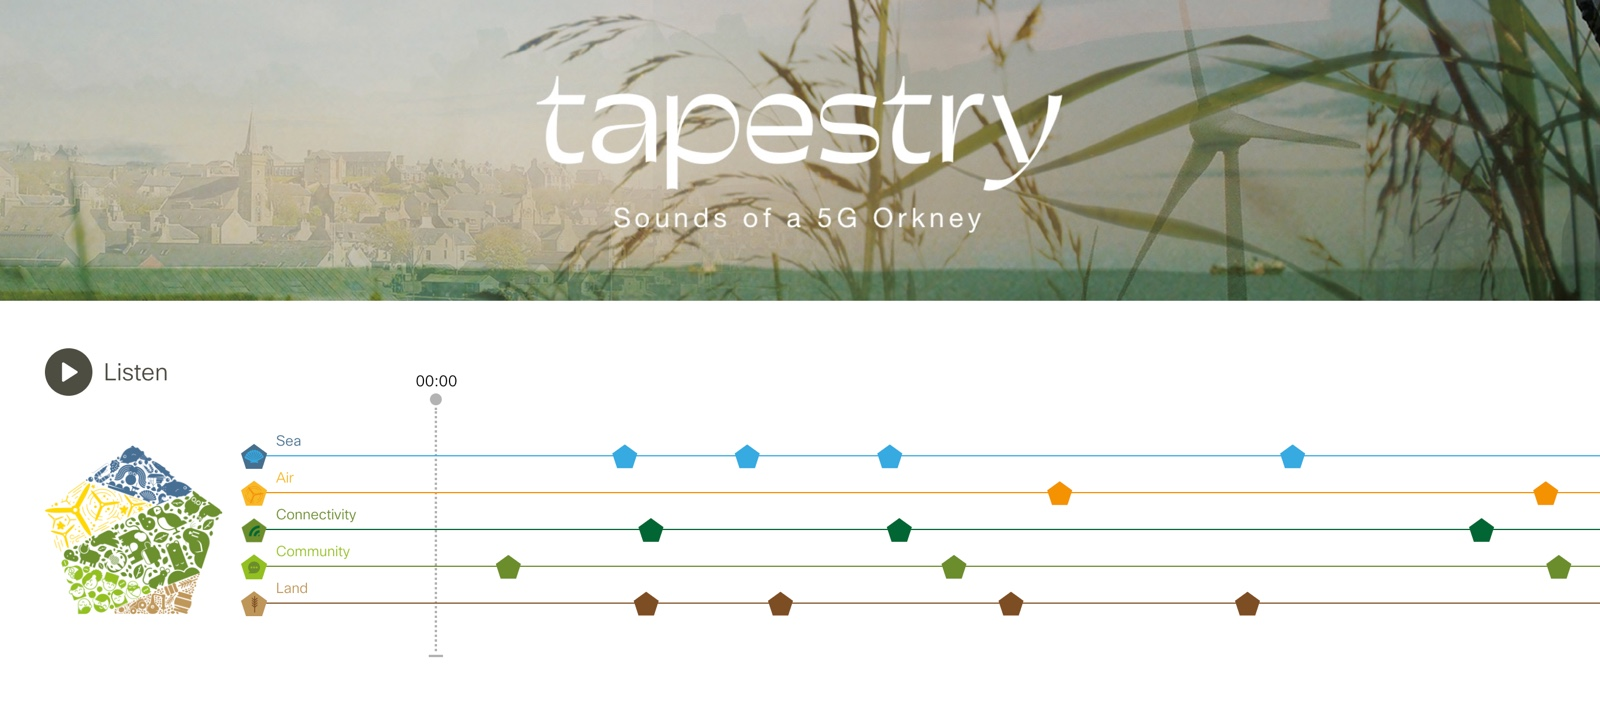 Tapestry: Sounds of a 5G Orkney is a website that showcases all that is great and good about Orkney, including the technological innovations that have been delivered by the 5G RuralFirst project.